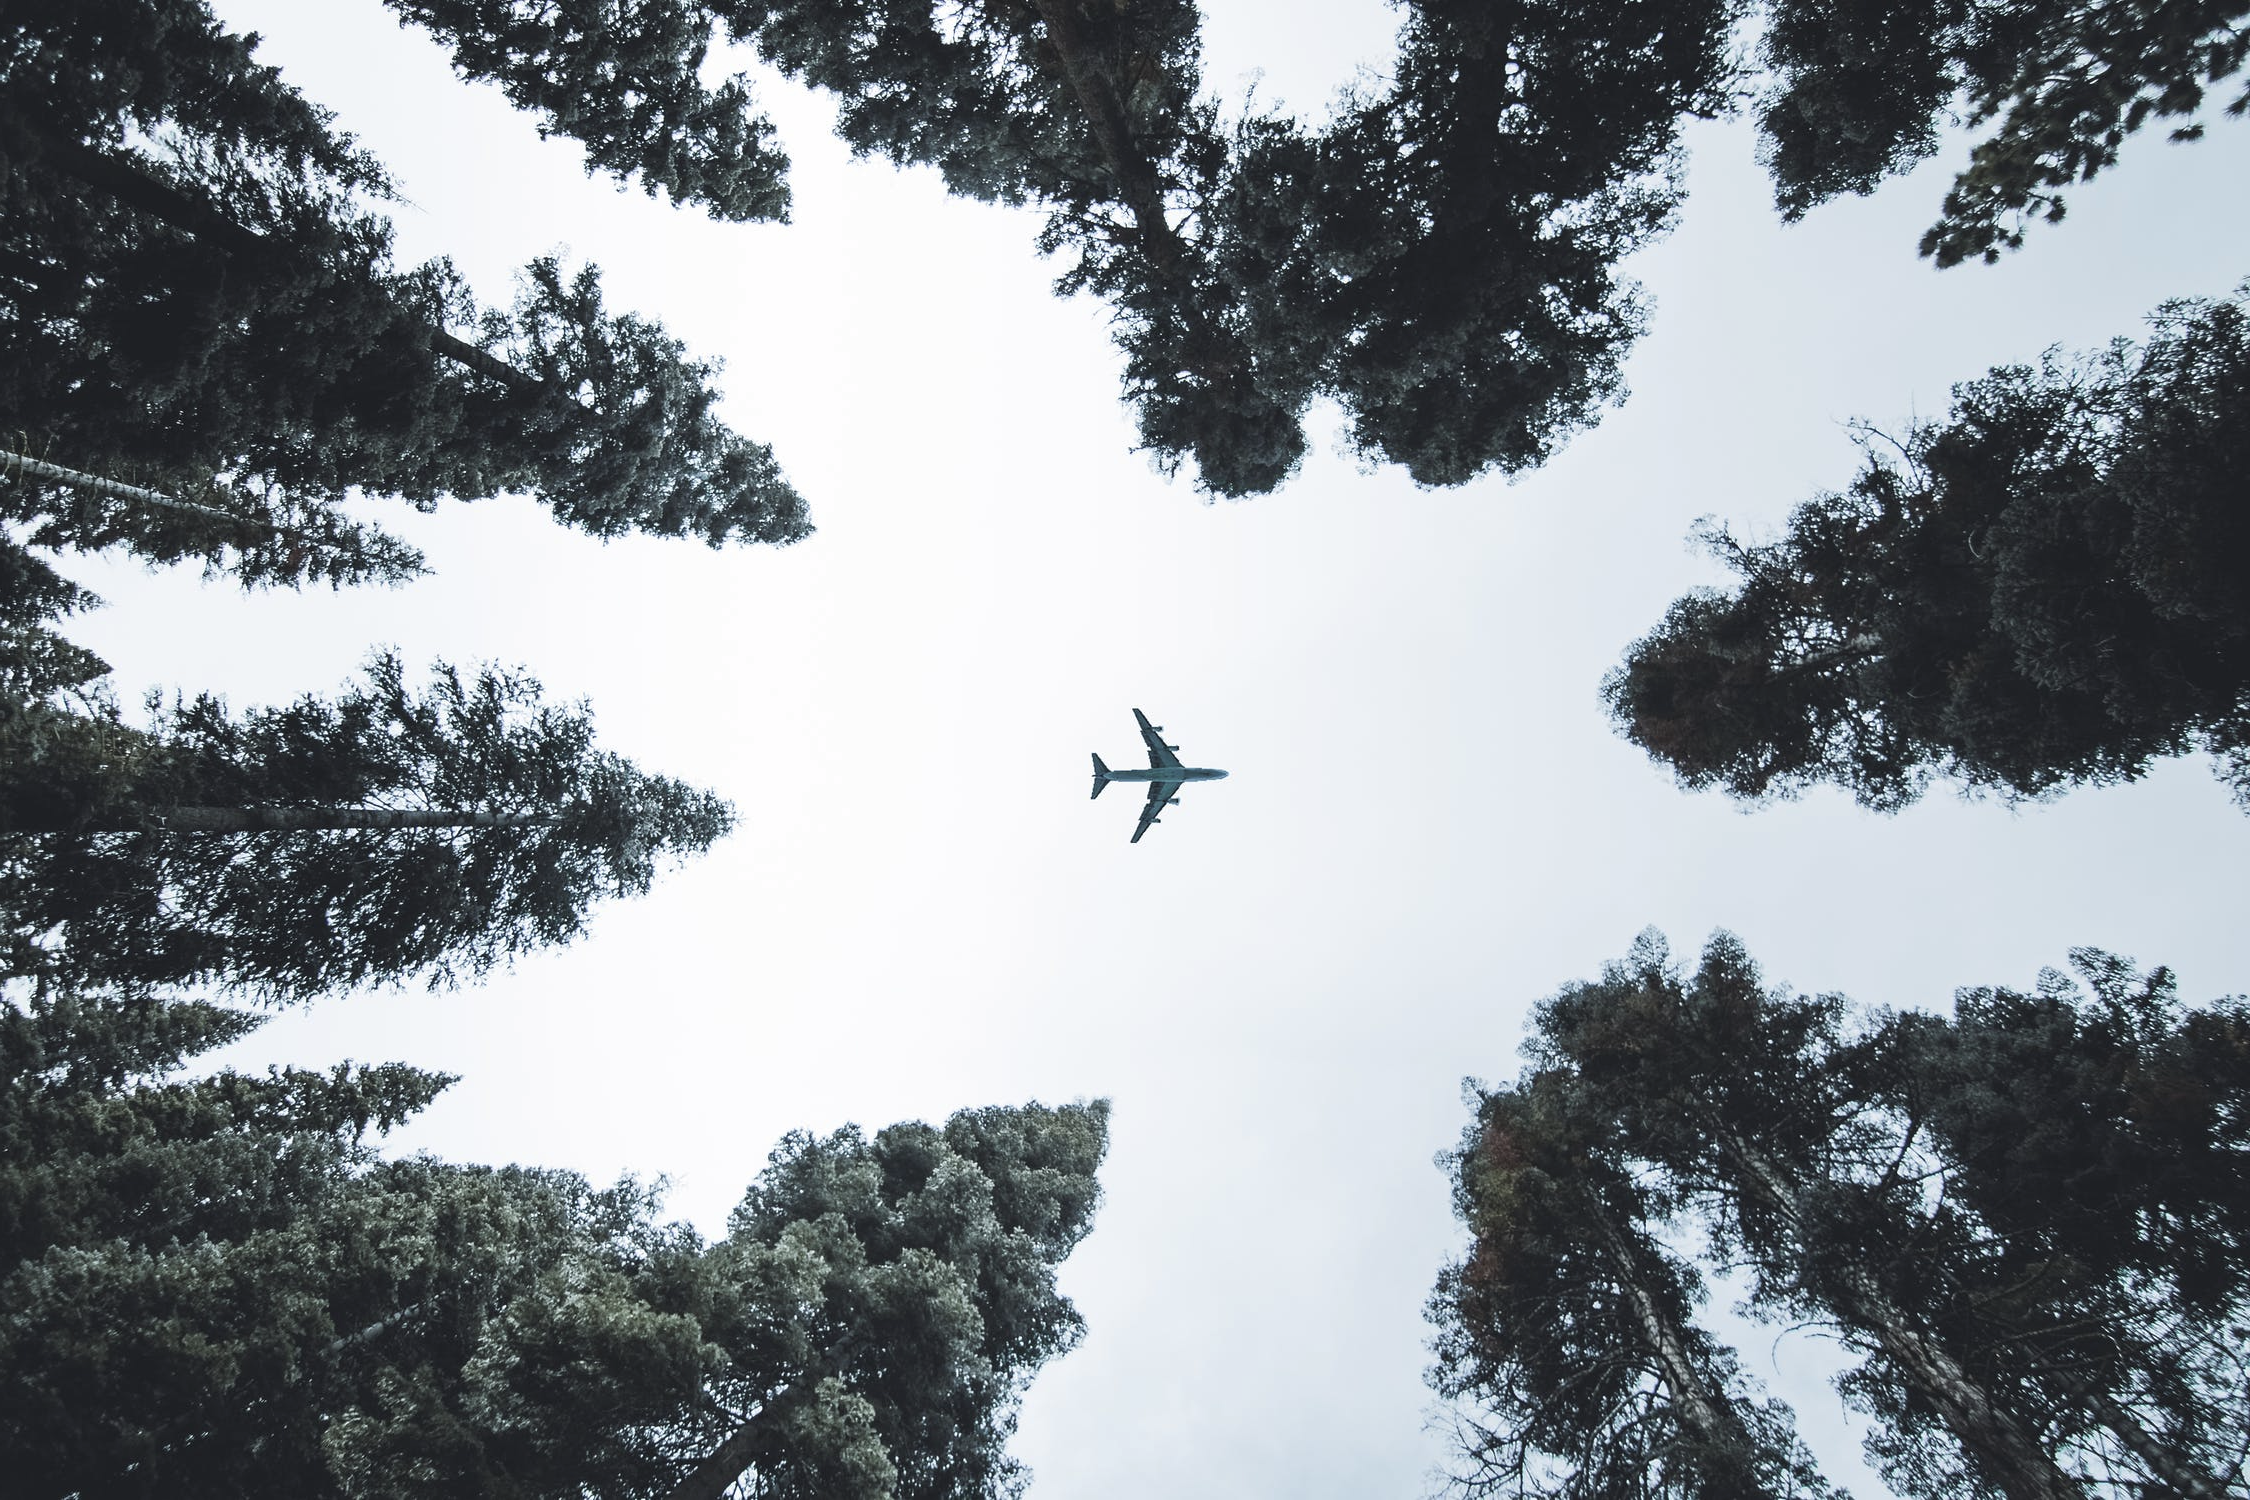 Plane seen flying above a forest.